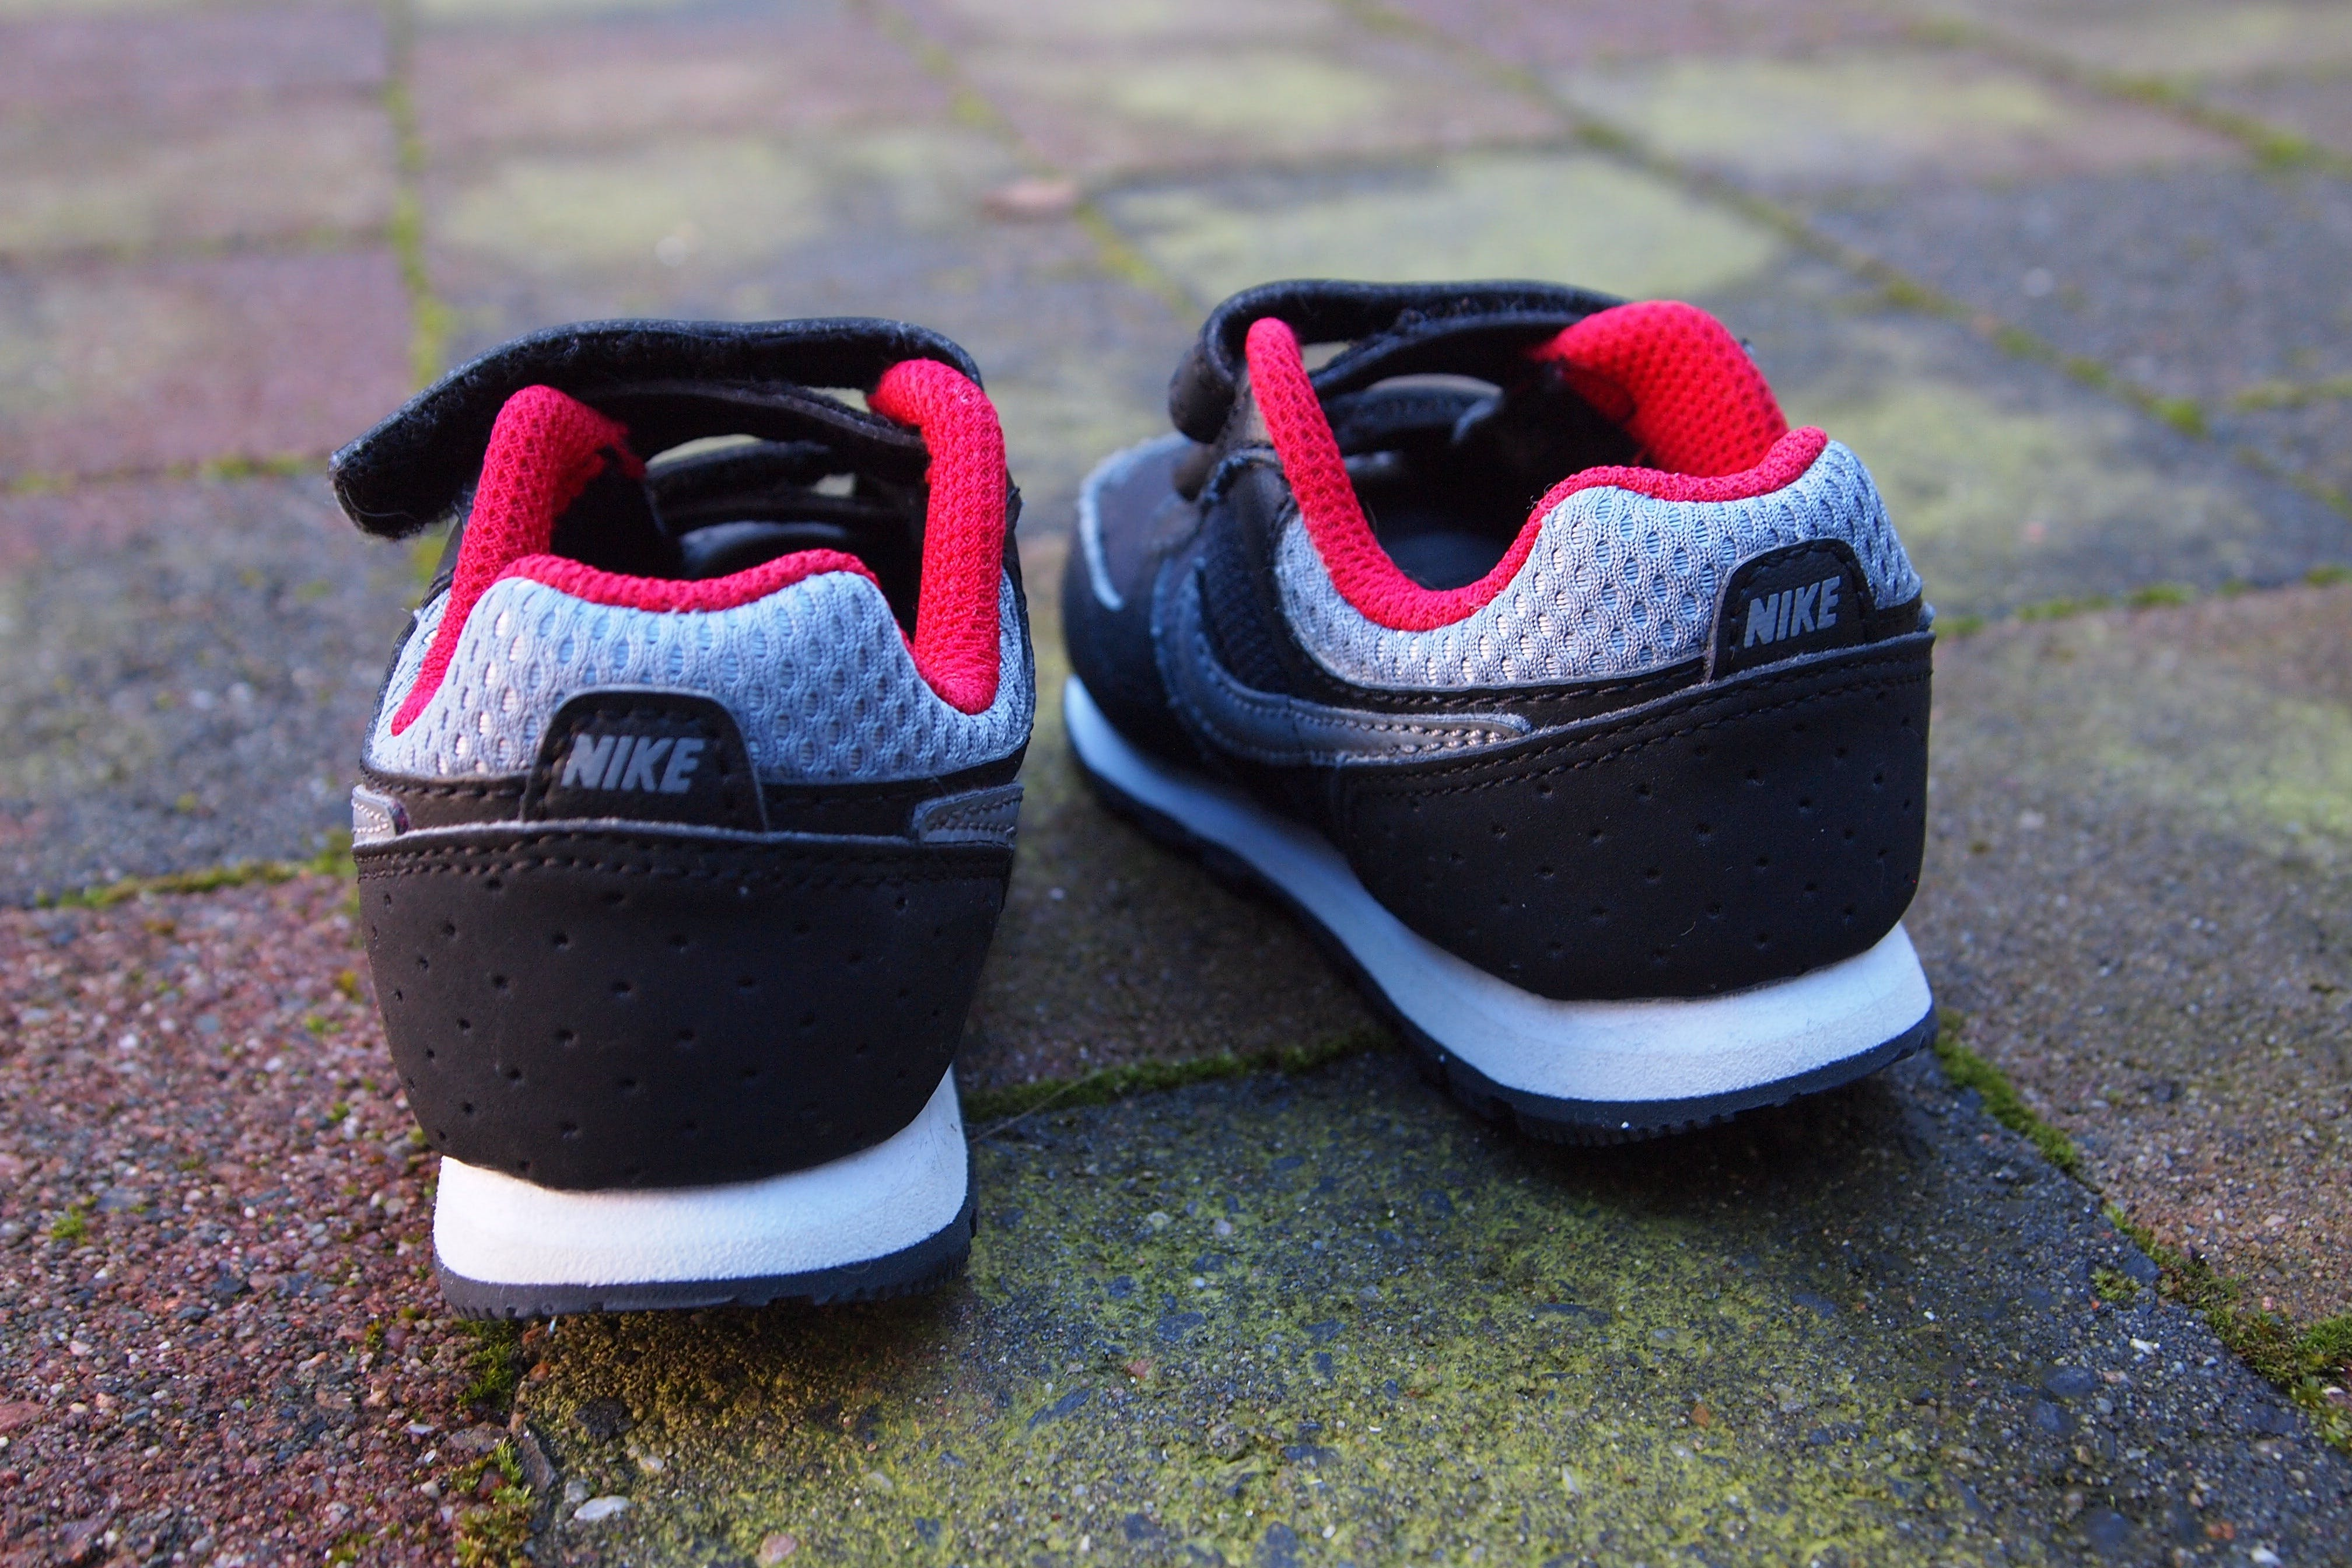 Pair of Gray-black-and-red Nike Sneakers